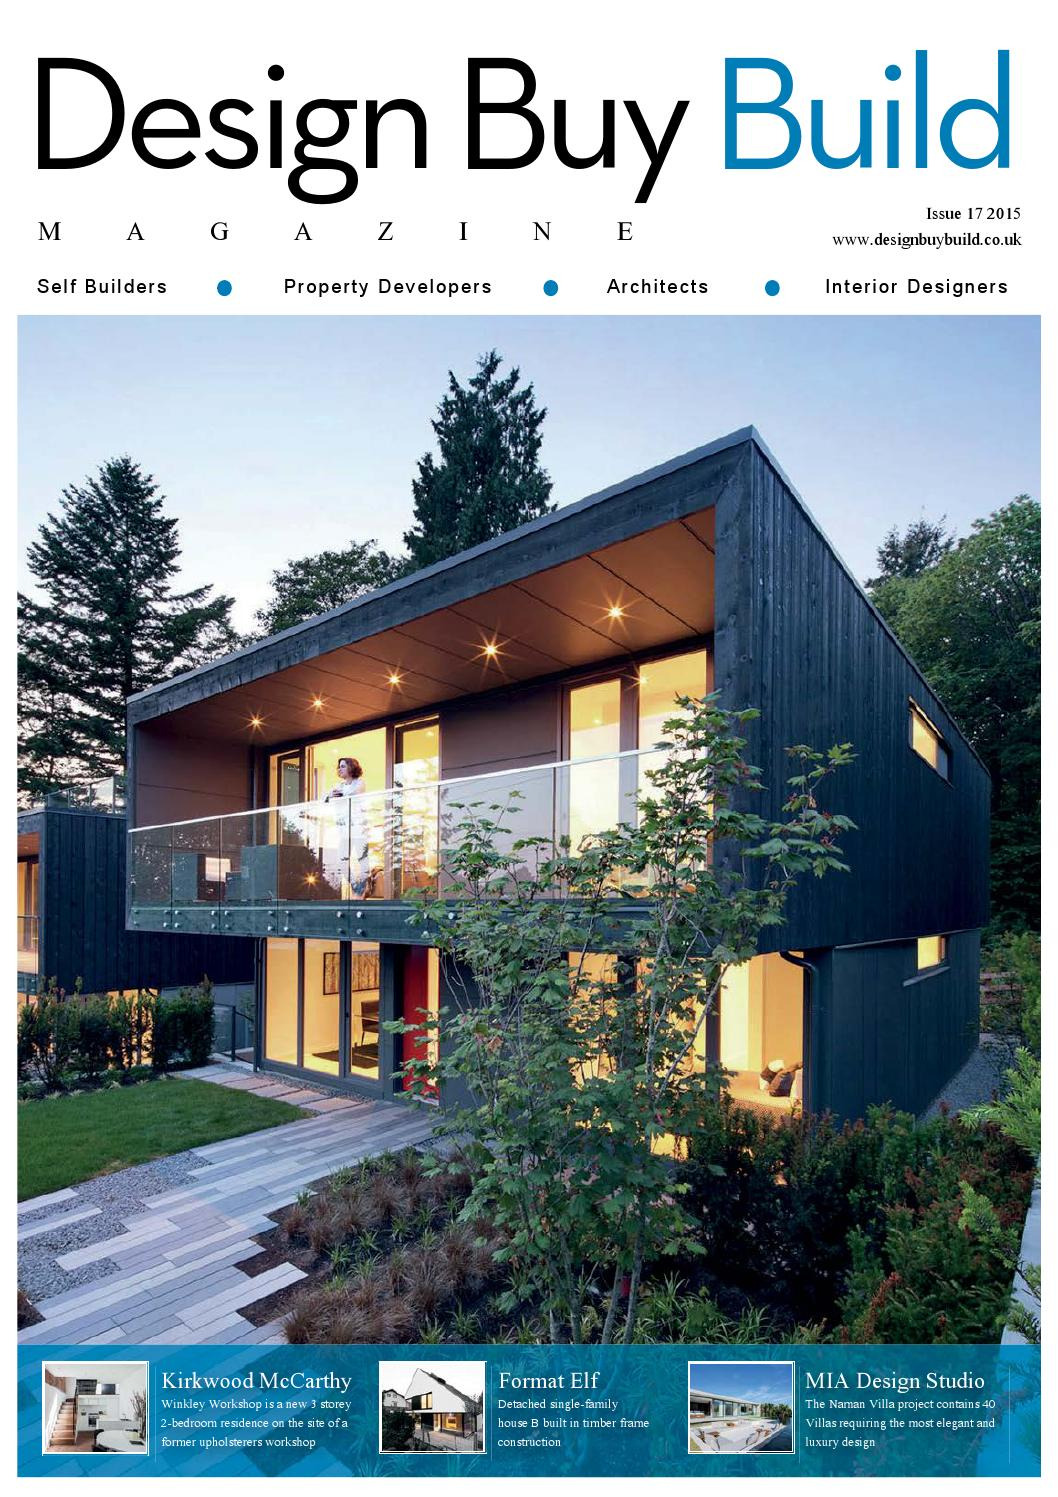 House Plans Under 100k to Build Elegant Design Buy Build issue 17 2015 by Mh Media Global issuu